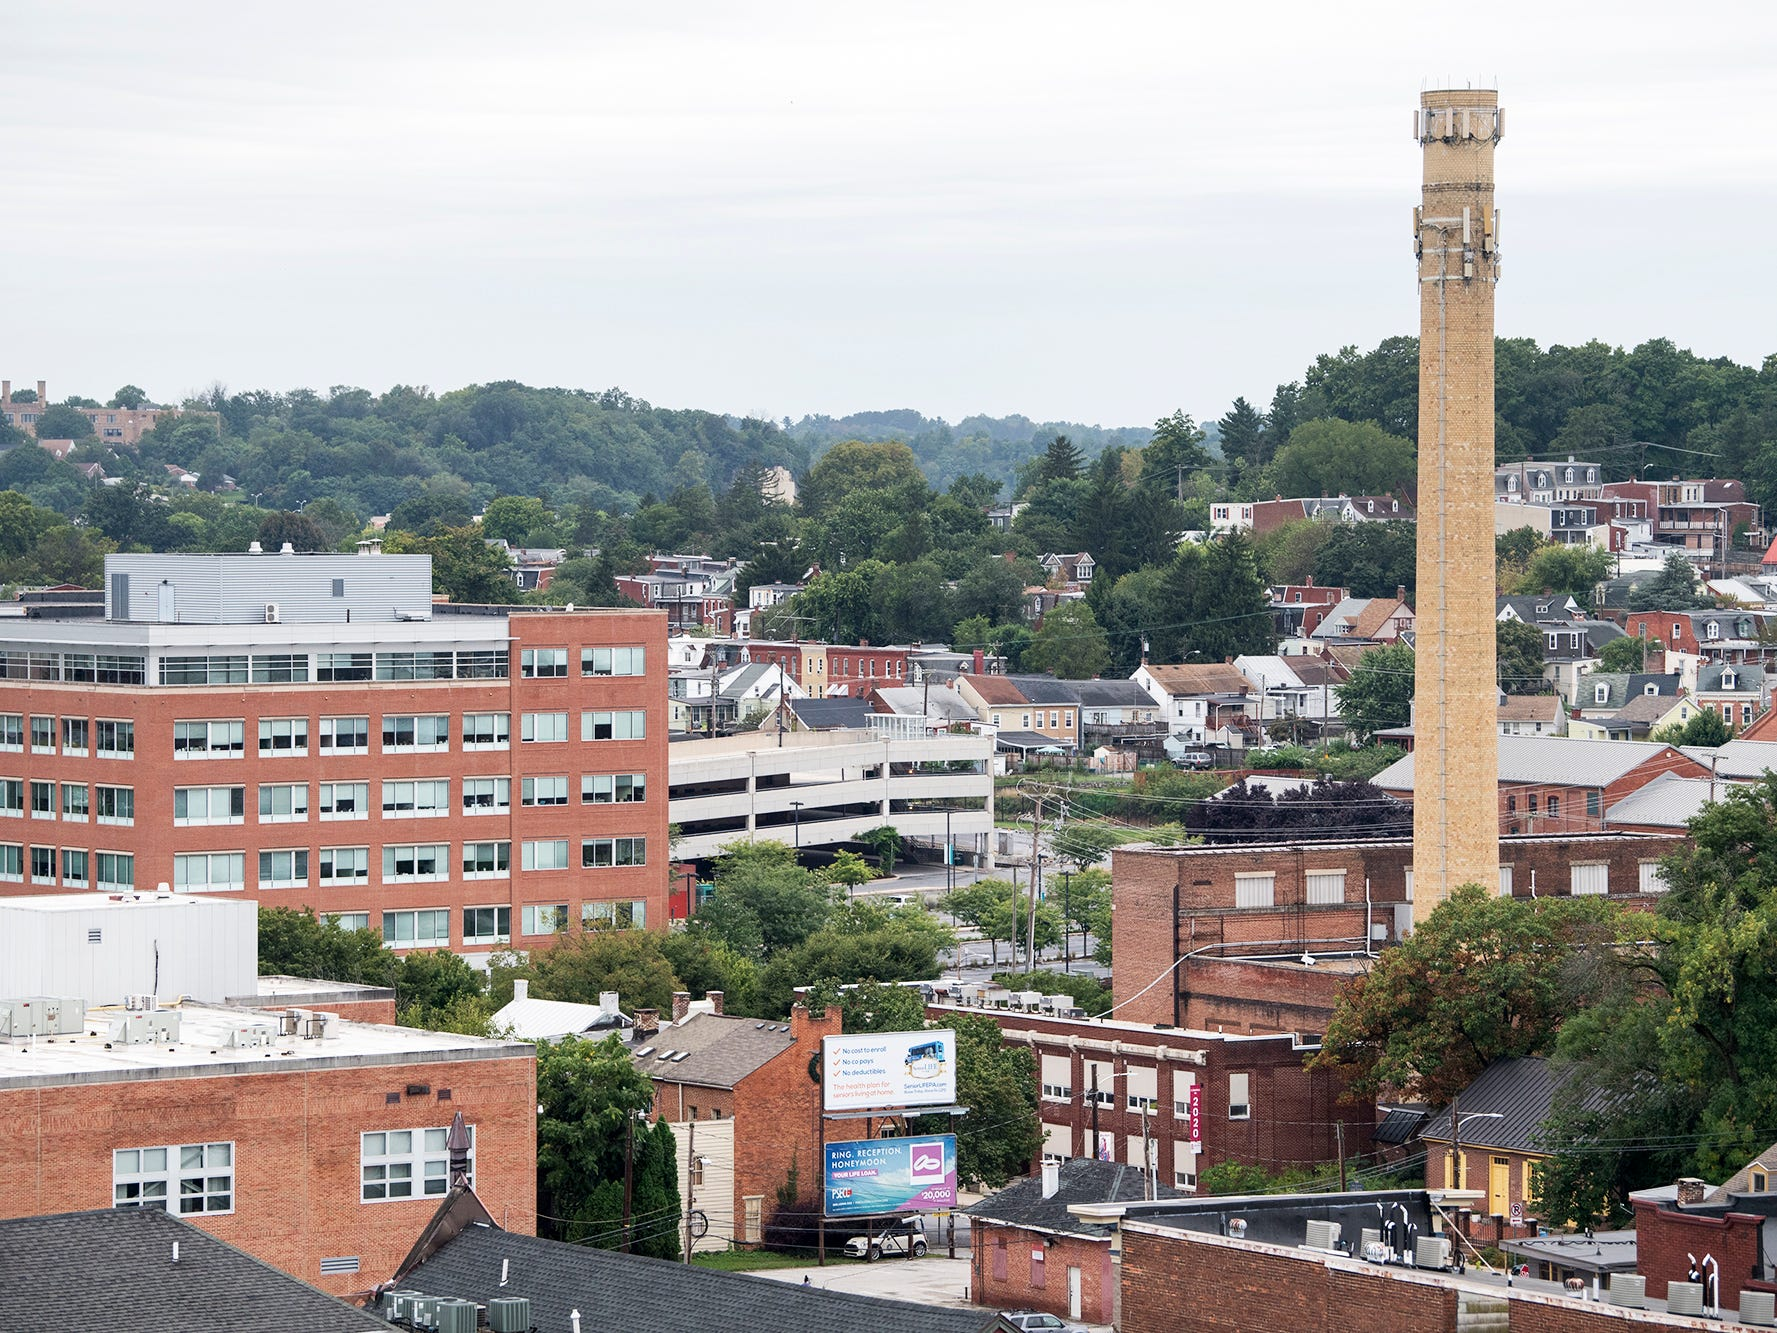 Looking northwest from the roof of the Rupp-Schmidt Building at 2 West Market Street in York. The smokestack on North Pershing can be seen at right.